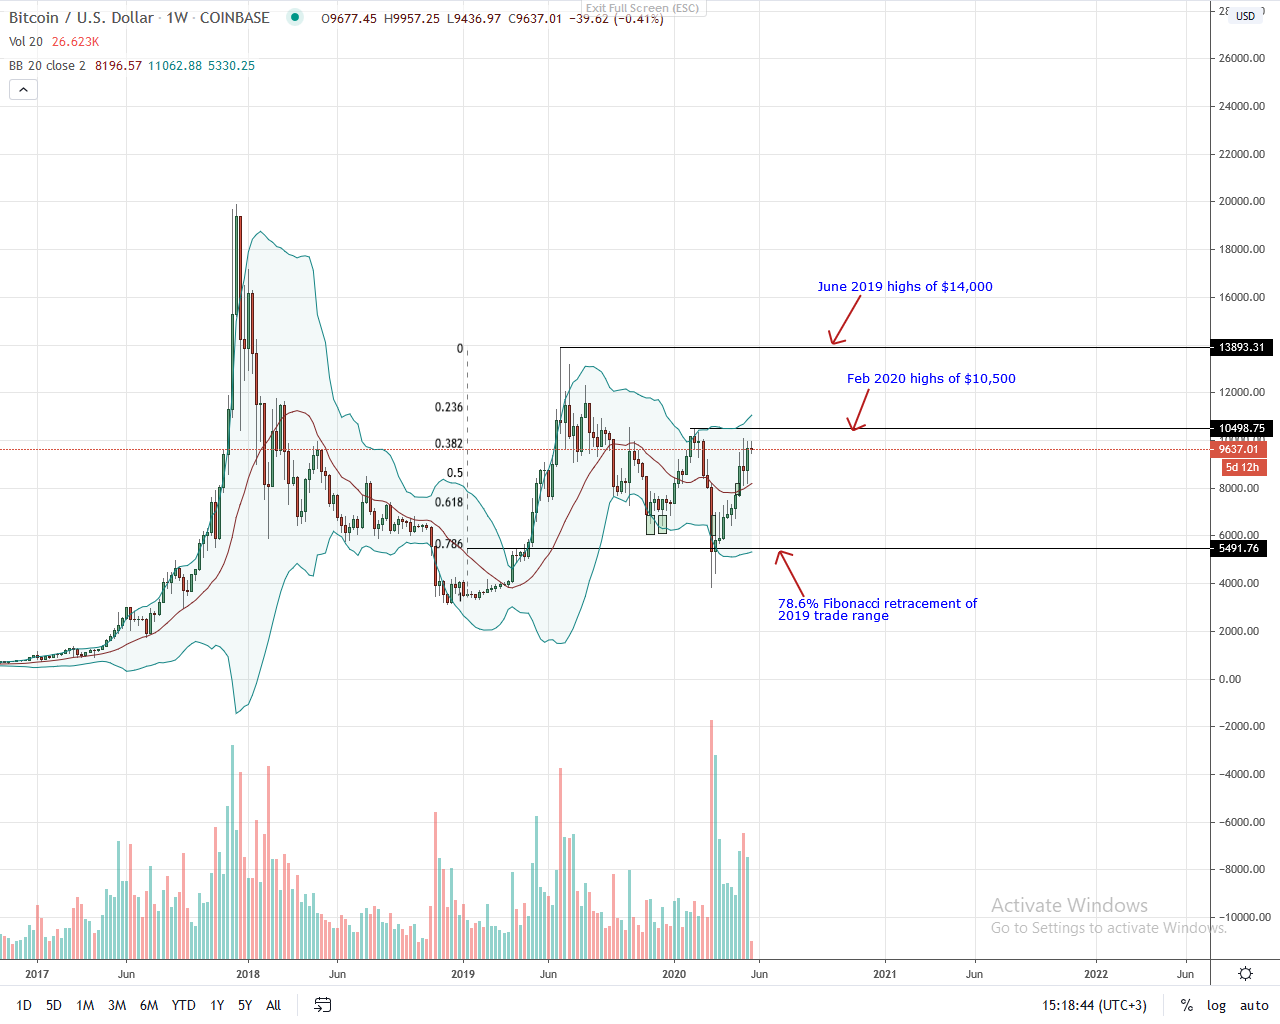 Bitcoin Daily Chart for May 19